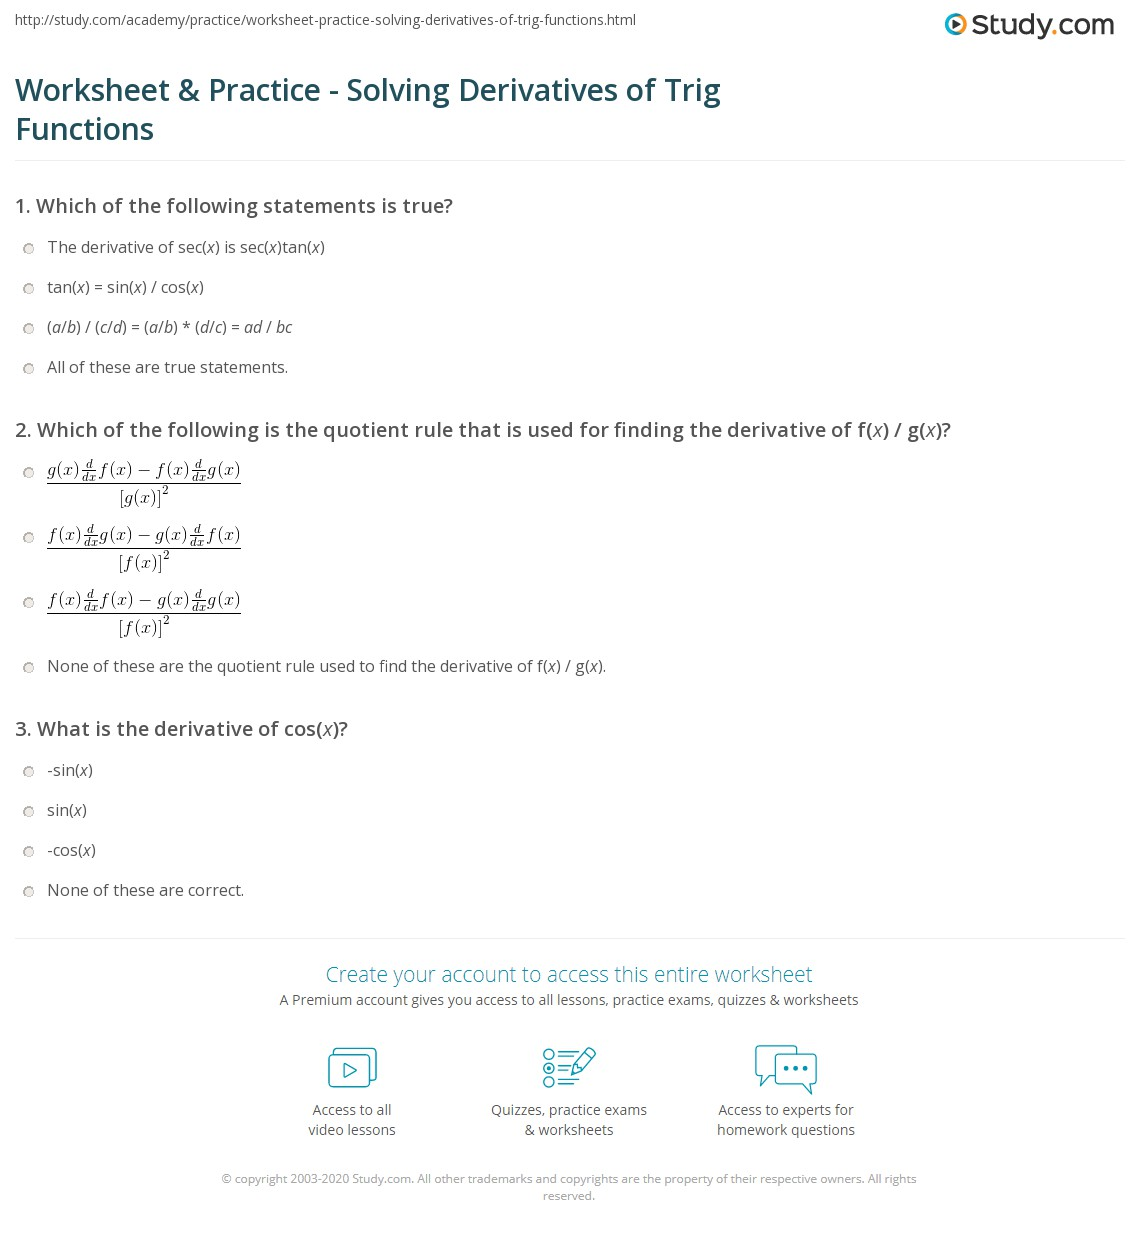 worksheet Derivatives Of Trig Functions Worksheet worksheet practice solving derivatives of trig functions study com print the derivative cosx worksheet